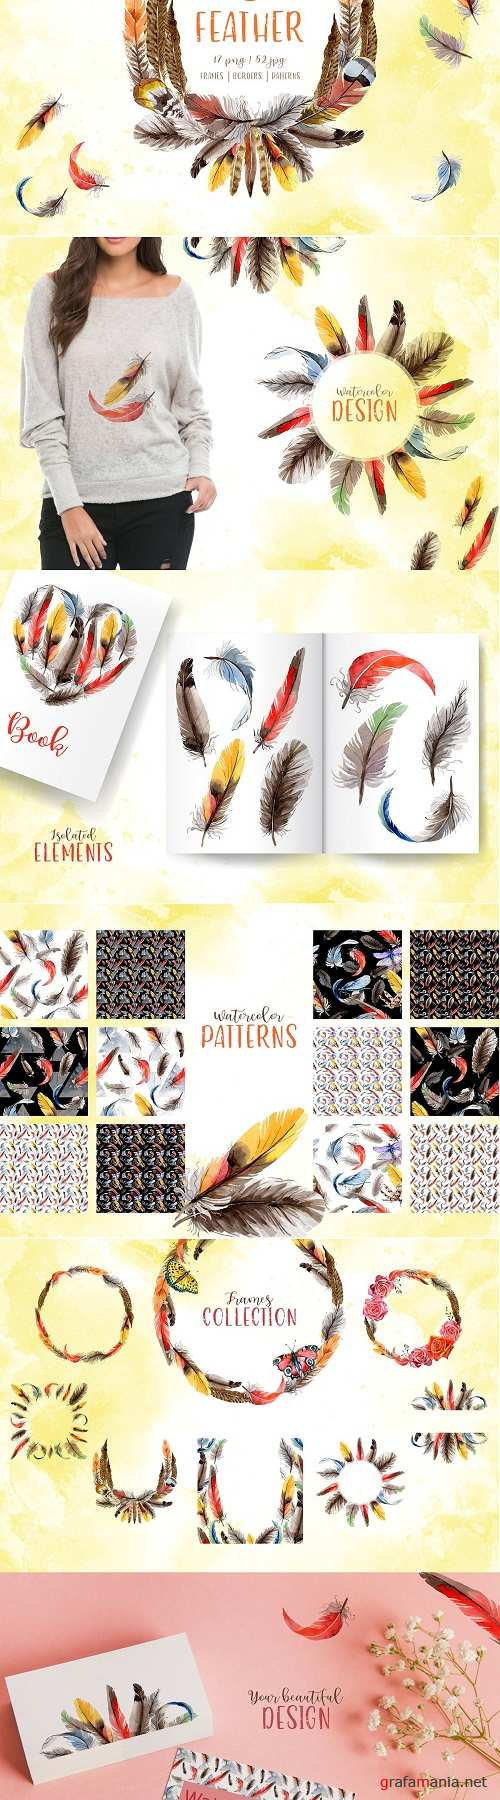 Feather Watercolor png - 3349794